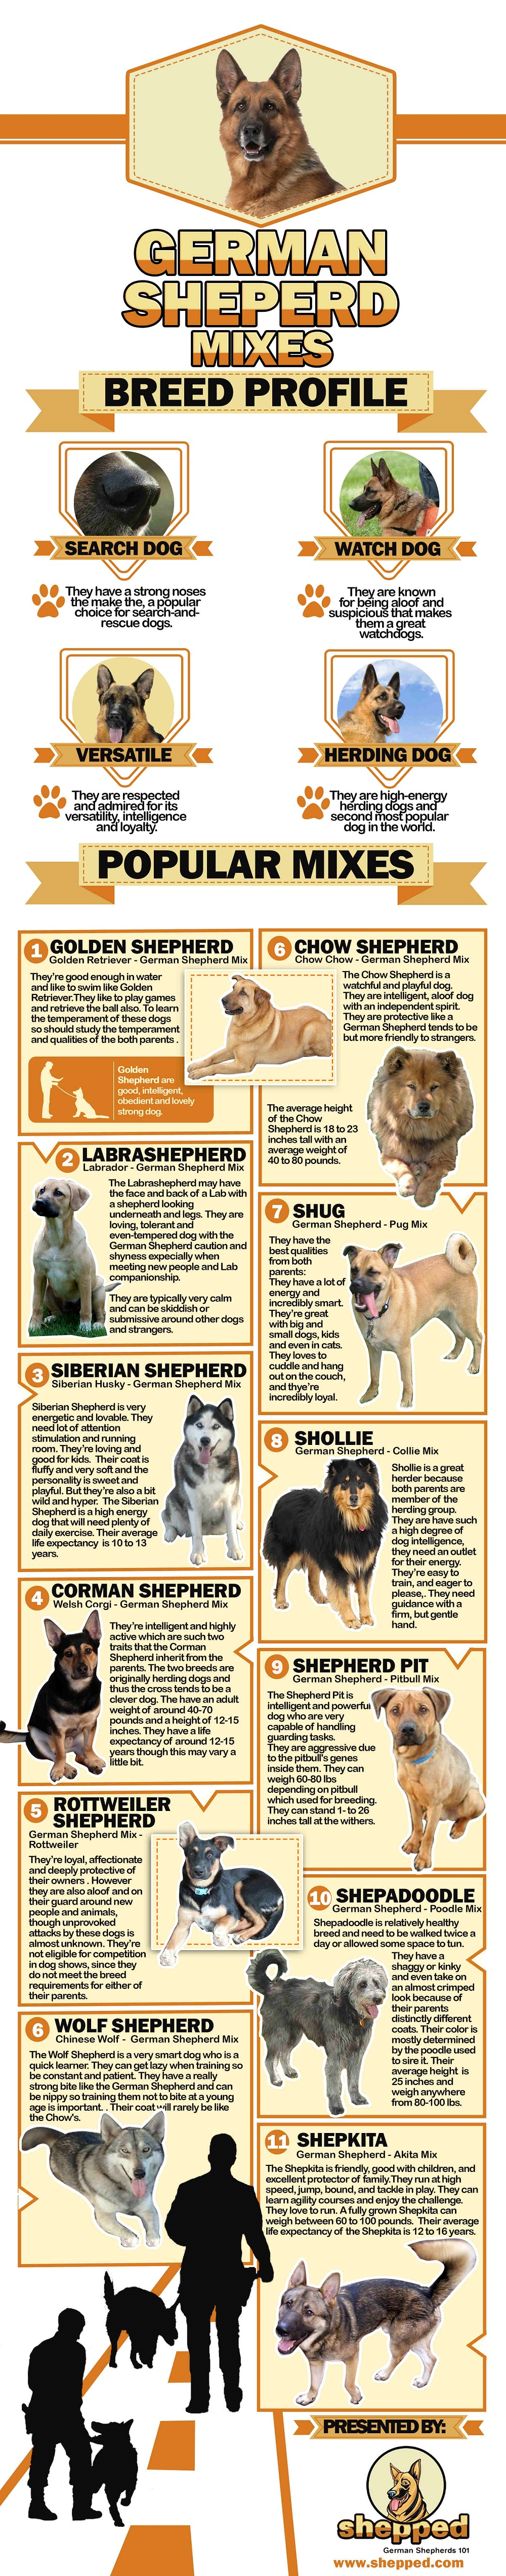 Most Popular German Shepherd Mixes